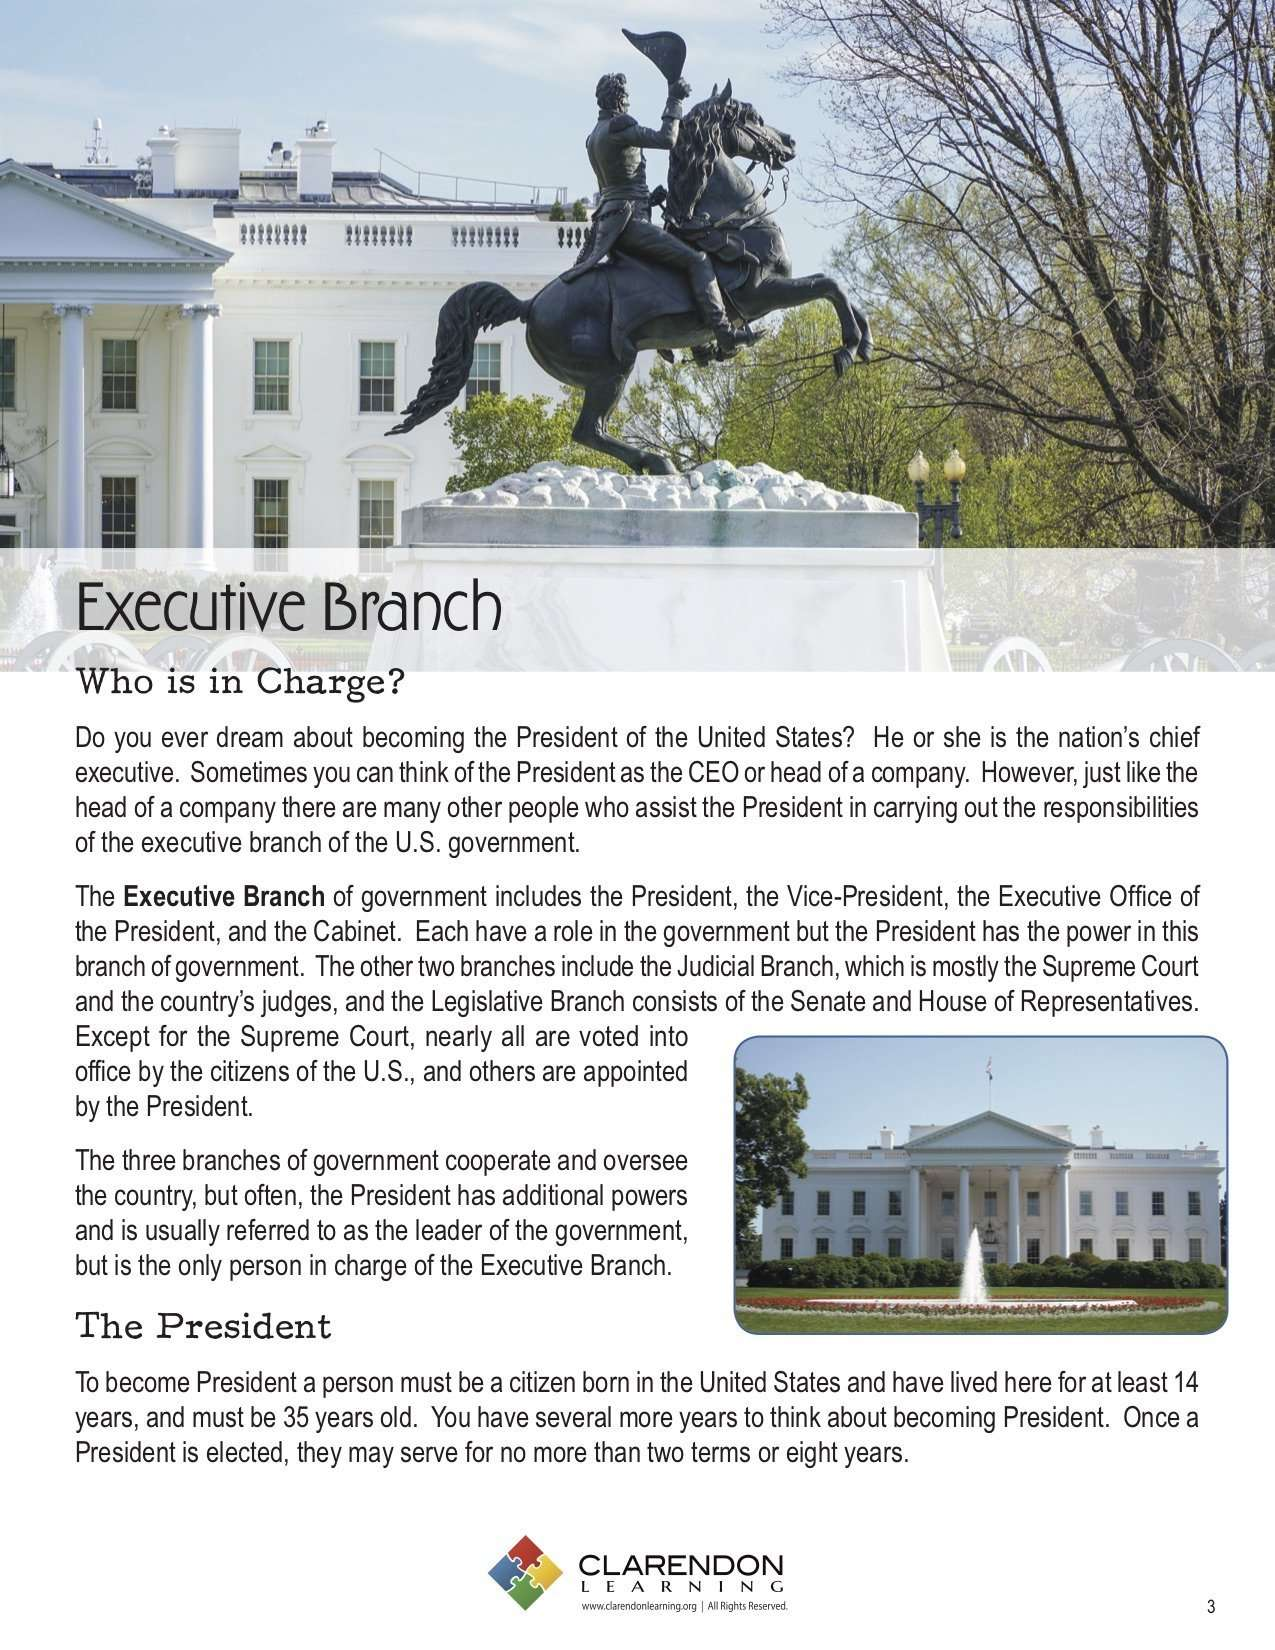 Executive Branch Lesson Plan Clarendon Learning